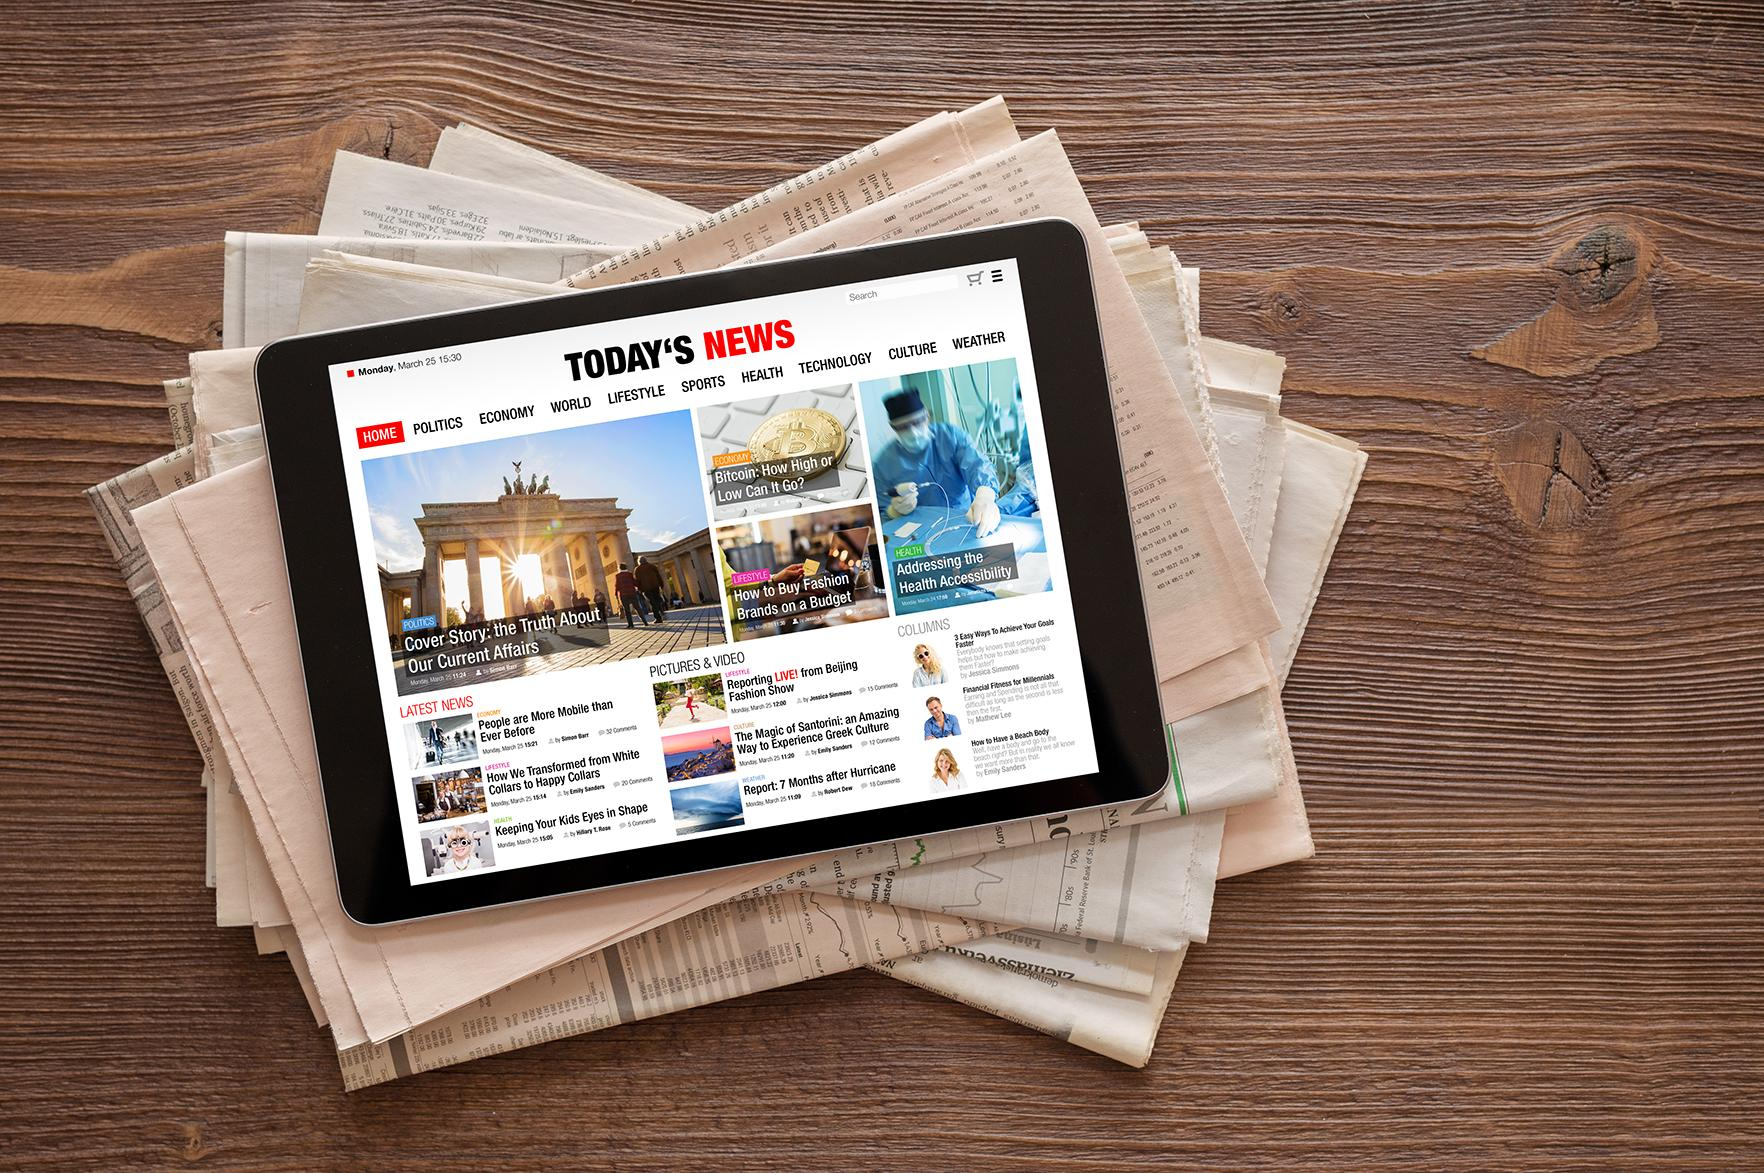 Liberty Travel in the media